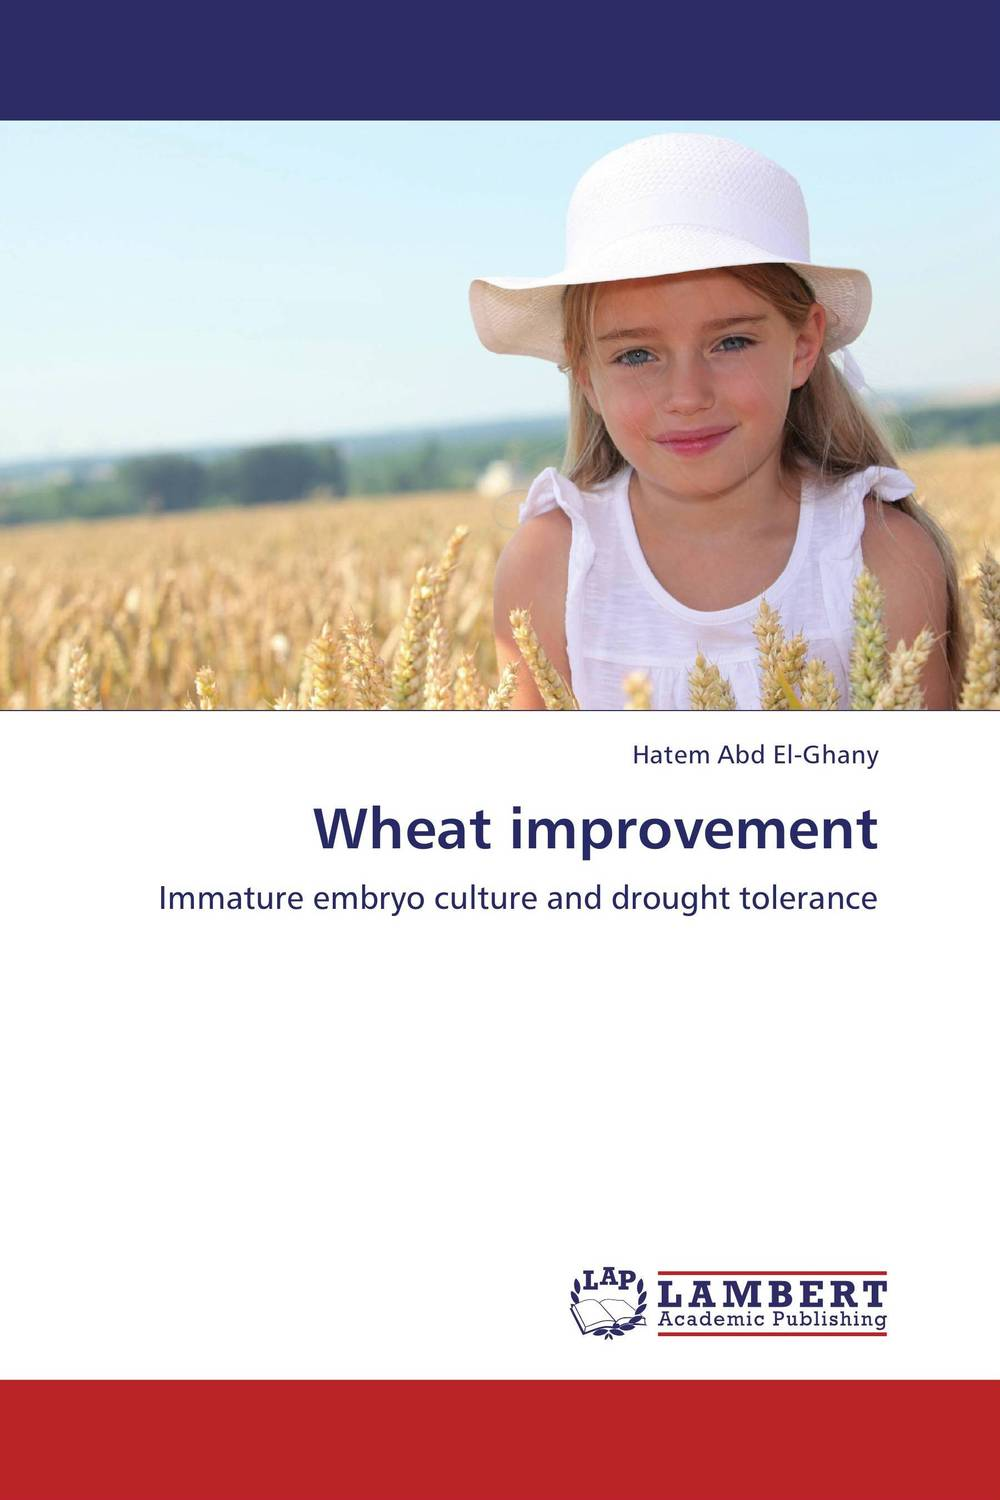 Wheat improvement breeding for improvement of water stress tolerance in bread wheat